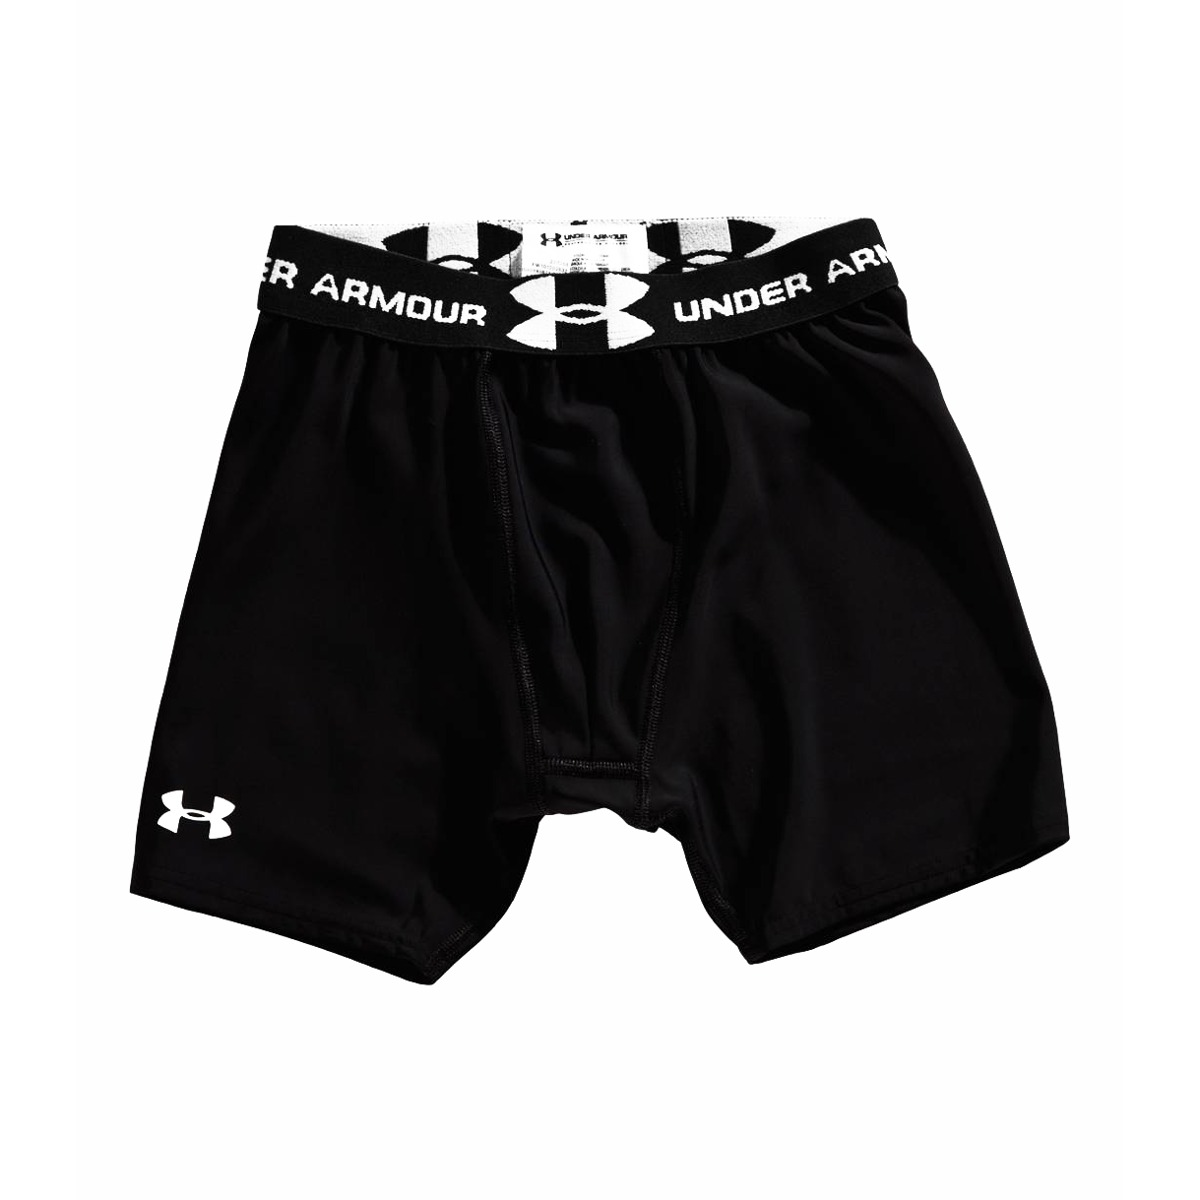 b46e4248a438f under armour calza 4 fitted shorts - niños. Cargando zoom.